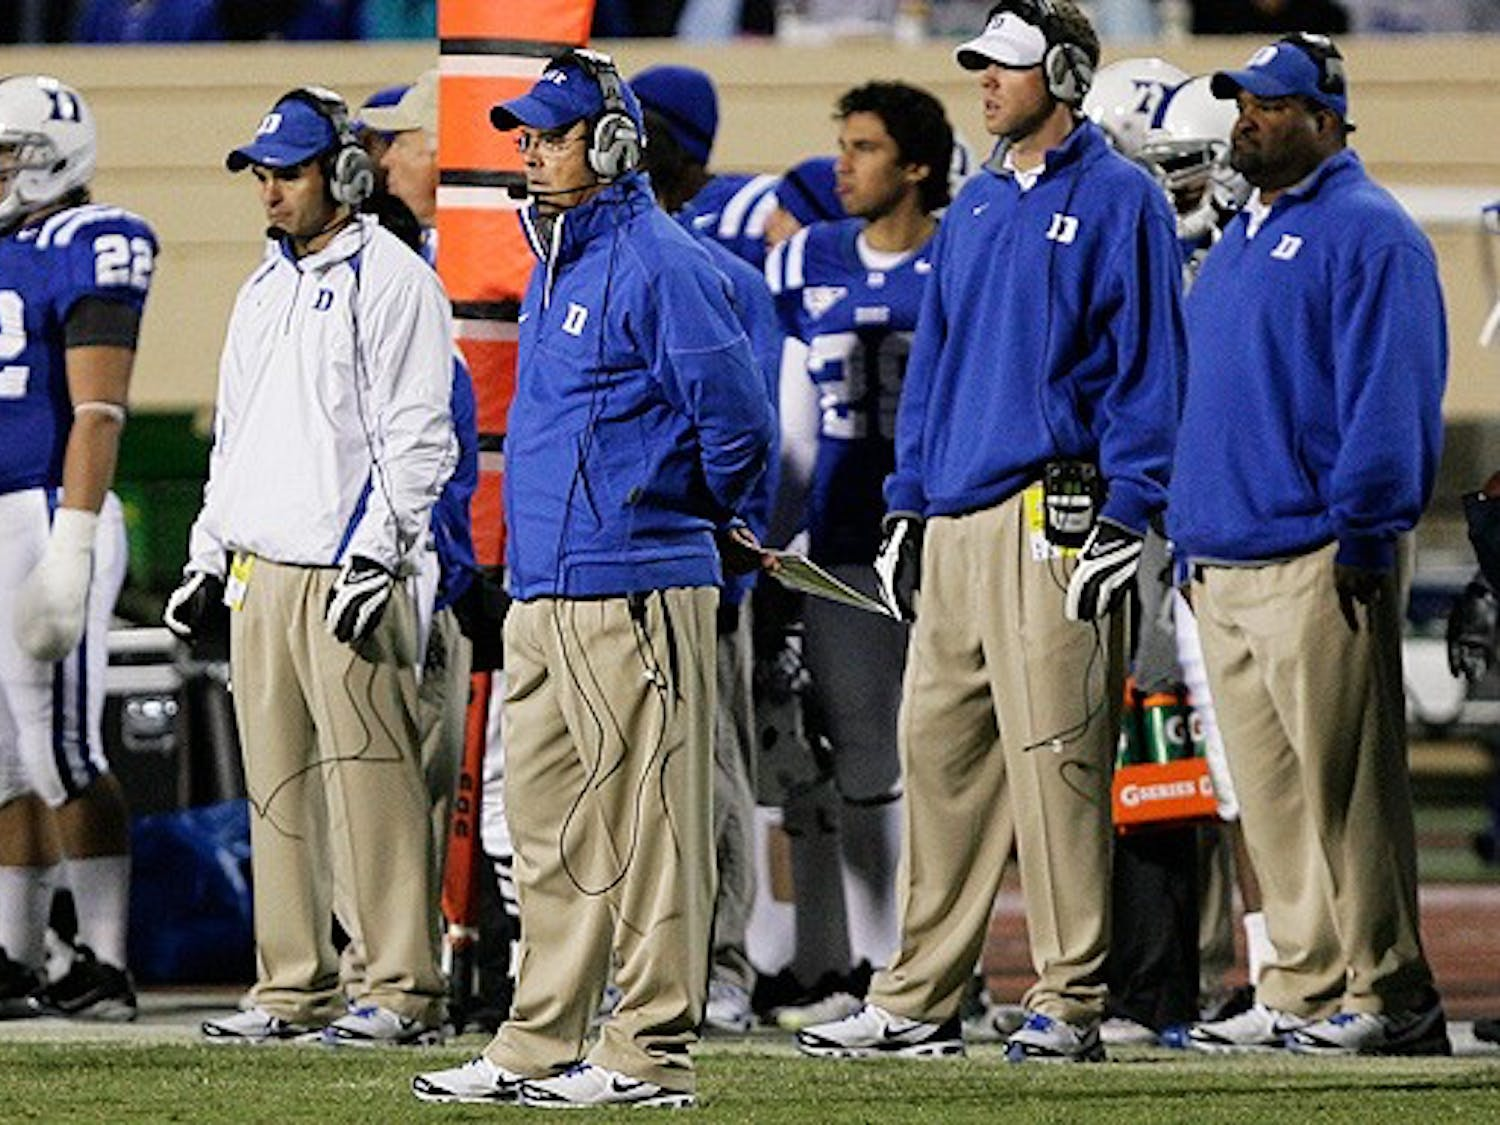 Senior safety Matt Daniels, along with Lee Butler, Donovan Varner, Jay Hollingsworth and Johnny Williams, highlight the seniors entering their final campaign with the Blue Devils.